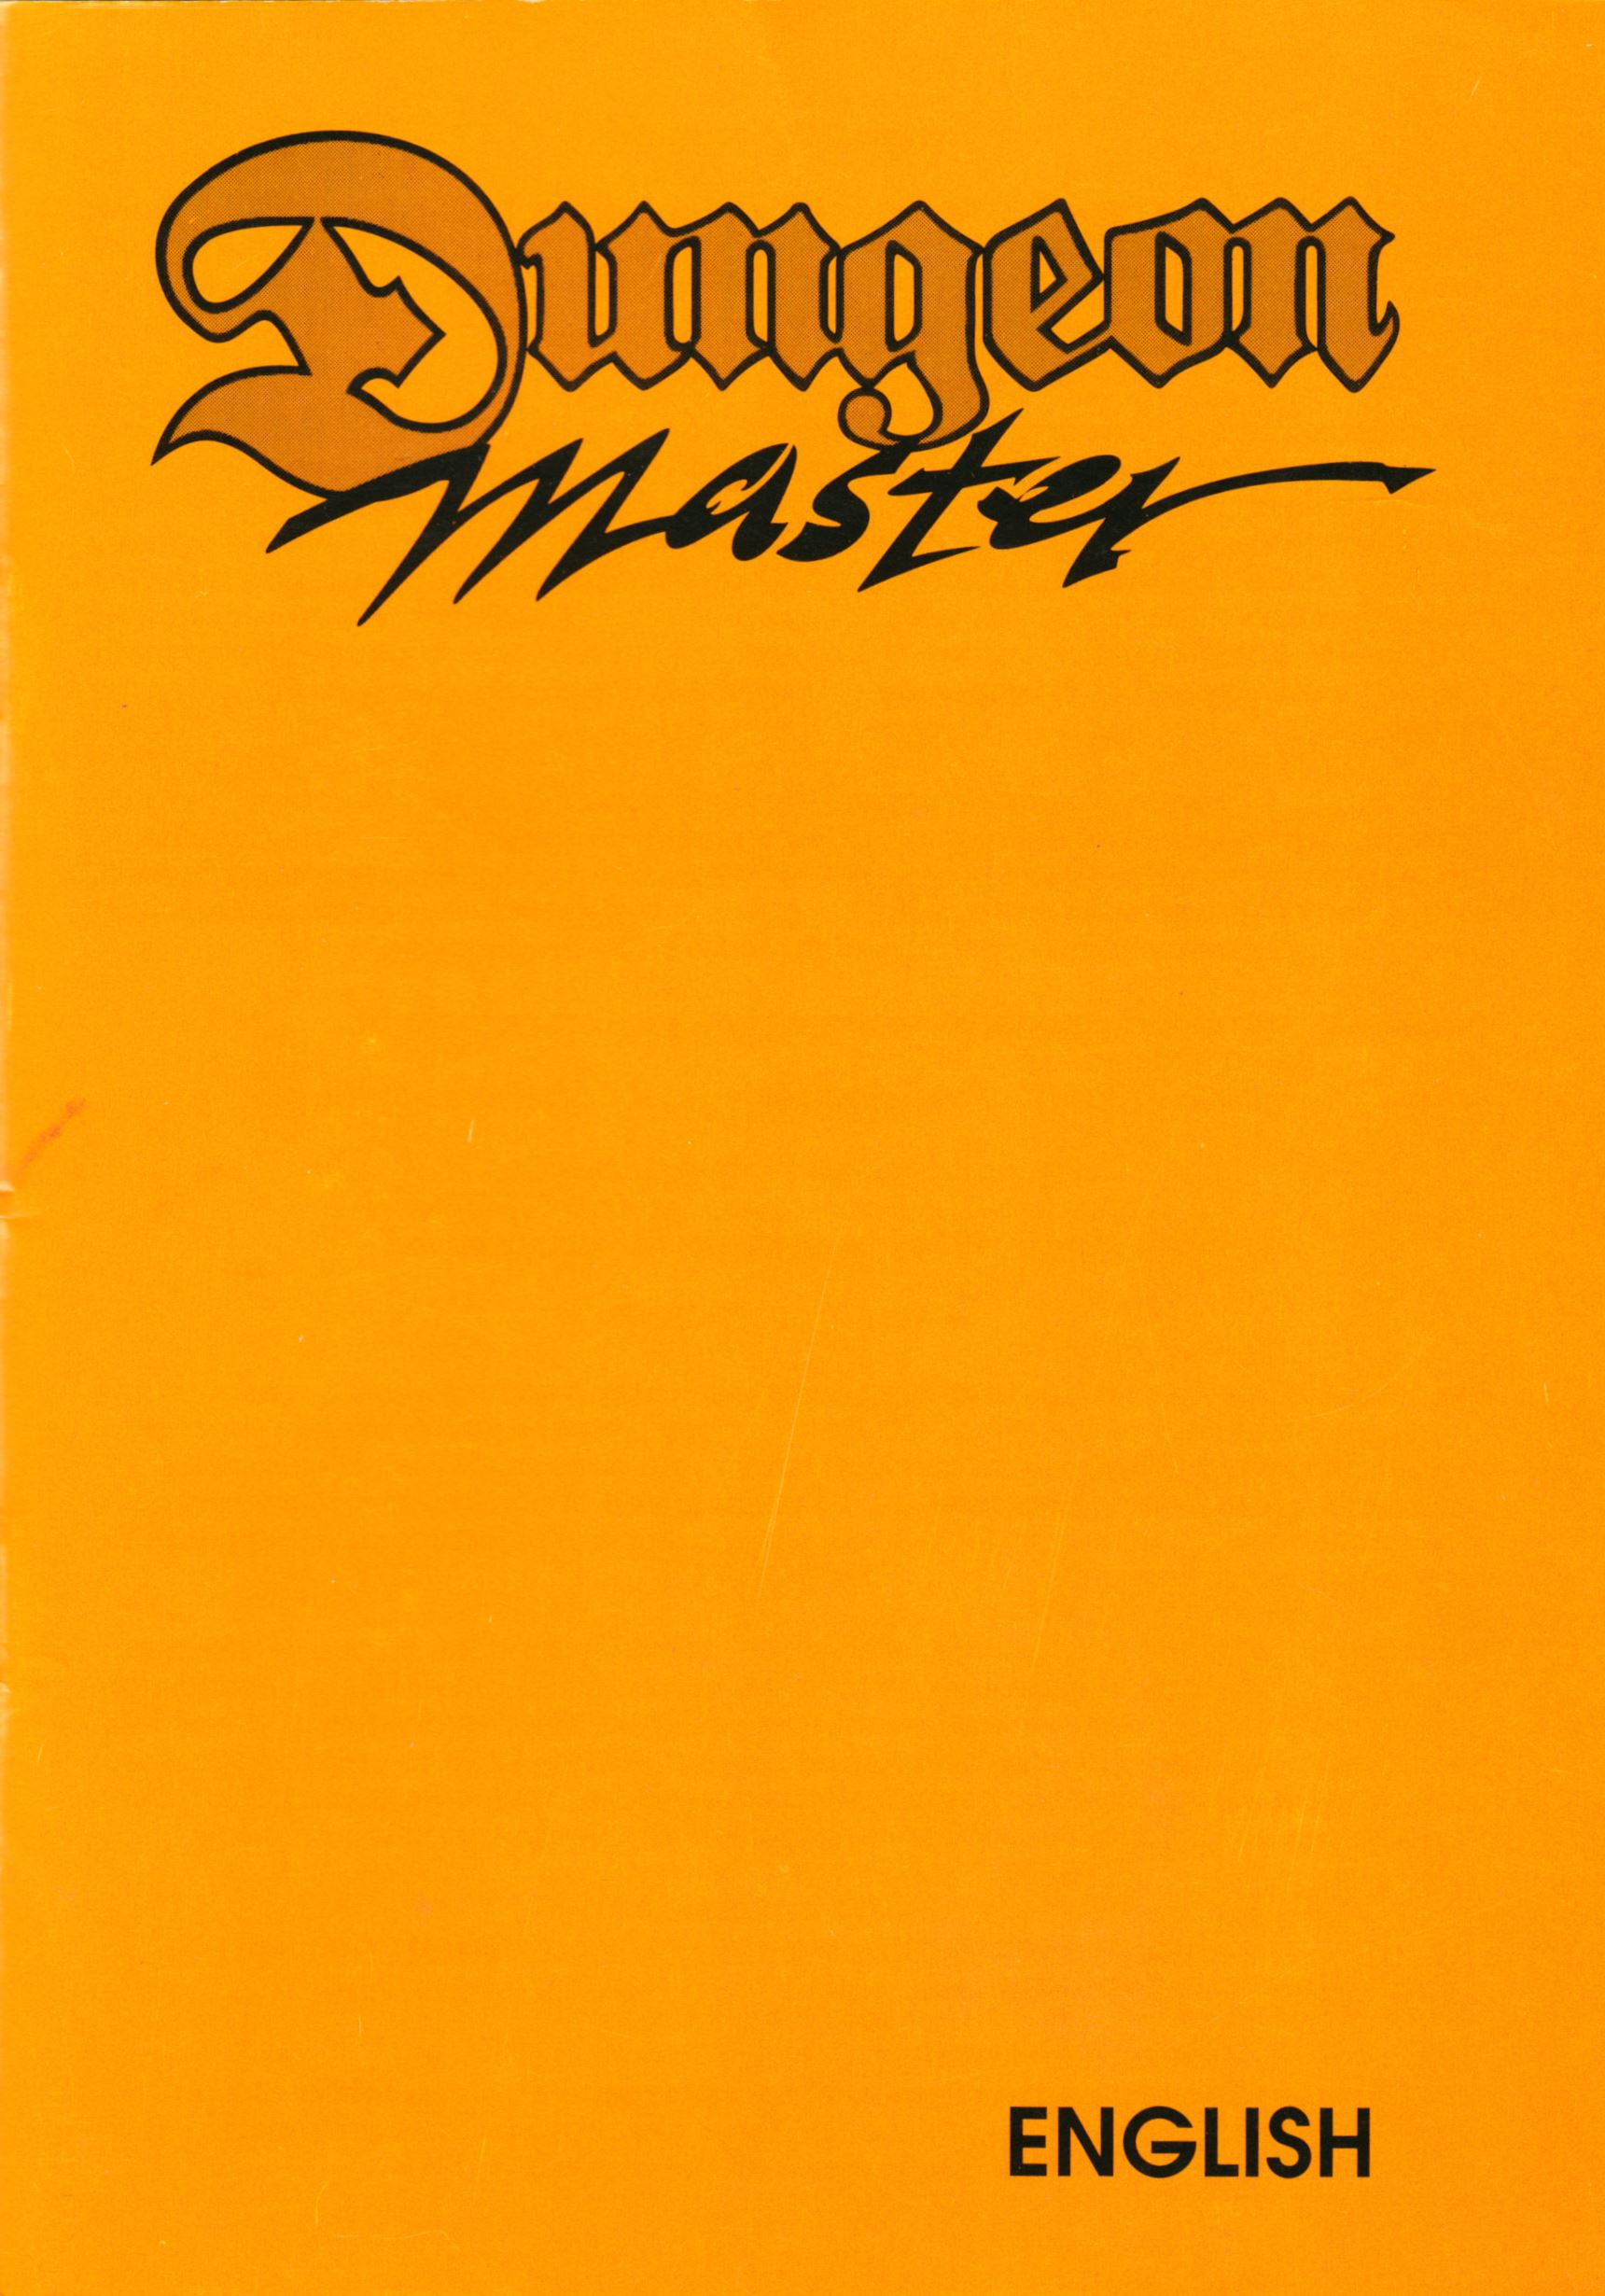 Game - Dungeon Master - UK - PC - Psygnosis - Manual - Page 001 - Scan